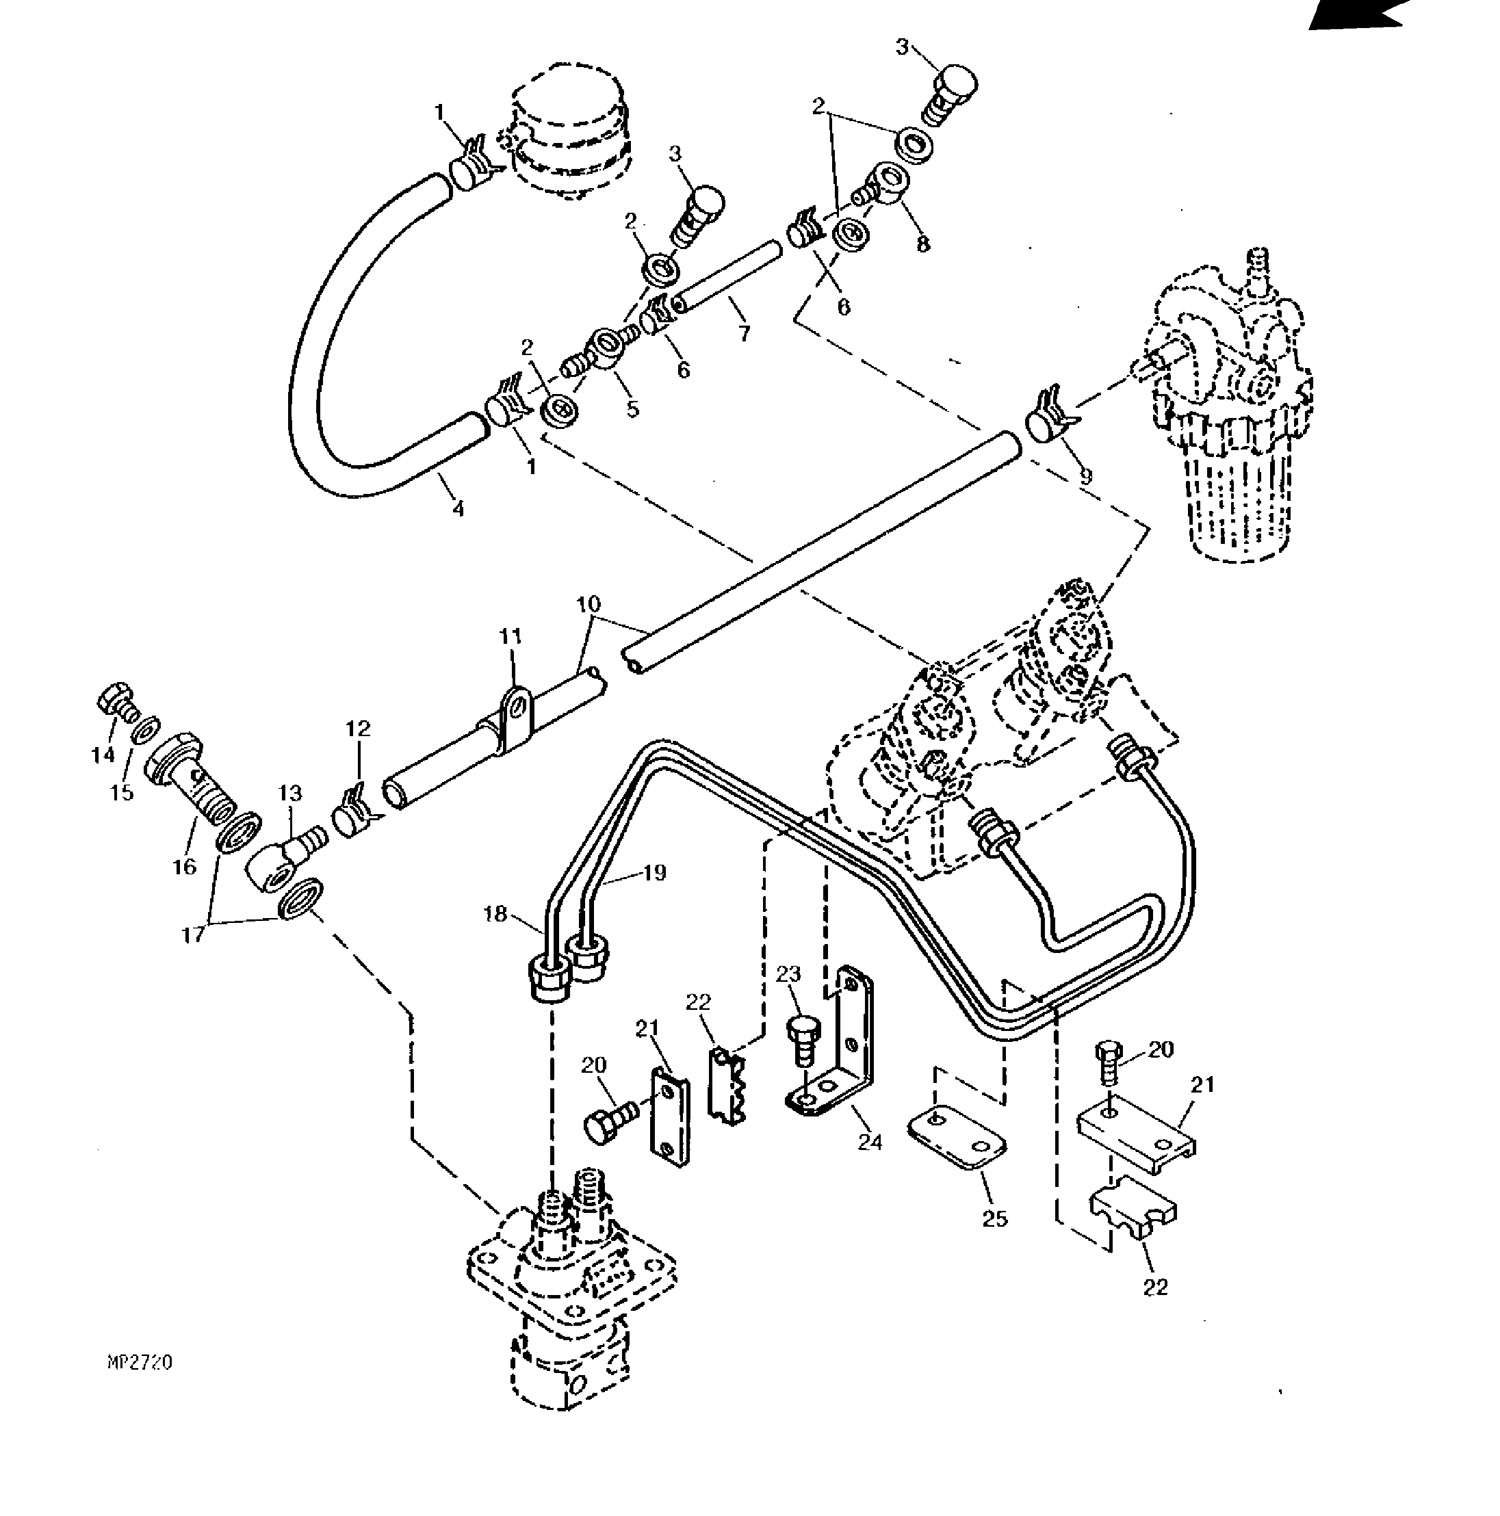 Injector Parts/fuel Filters/glow Plugs For John Deere Compact Tractors regarding John Deere Skid Steer Parts Diagram